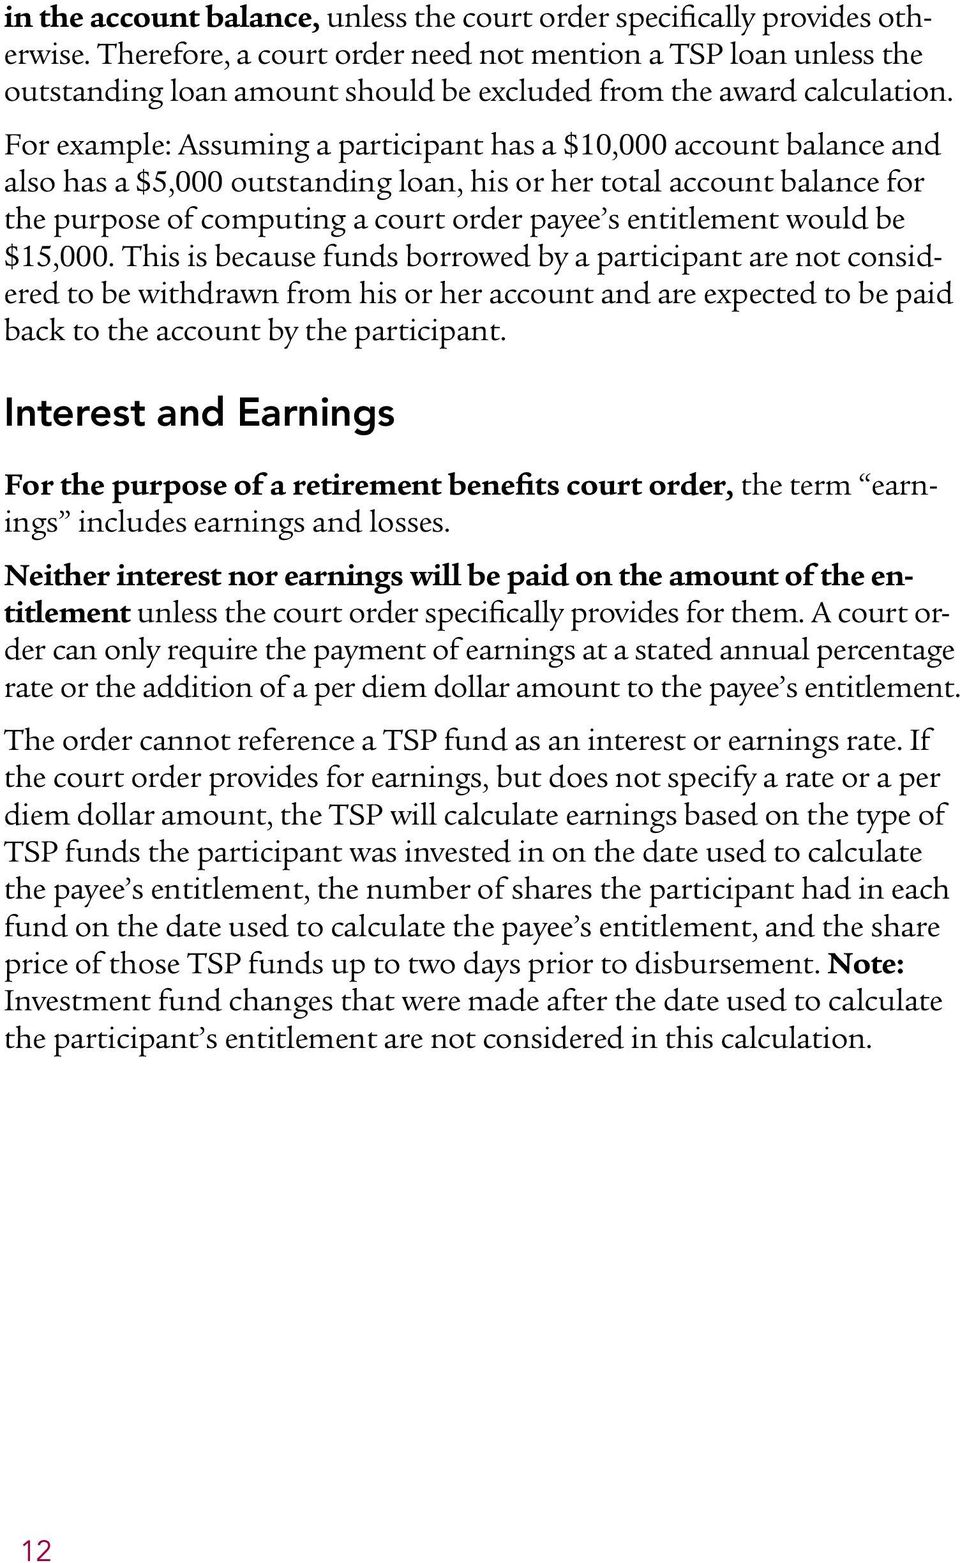 For example: Assuming a participant has a $10,000 account balance and also has a $5,000 outstanding loan, his or her total account balance for the purpose of computing a court order payee s